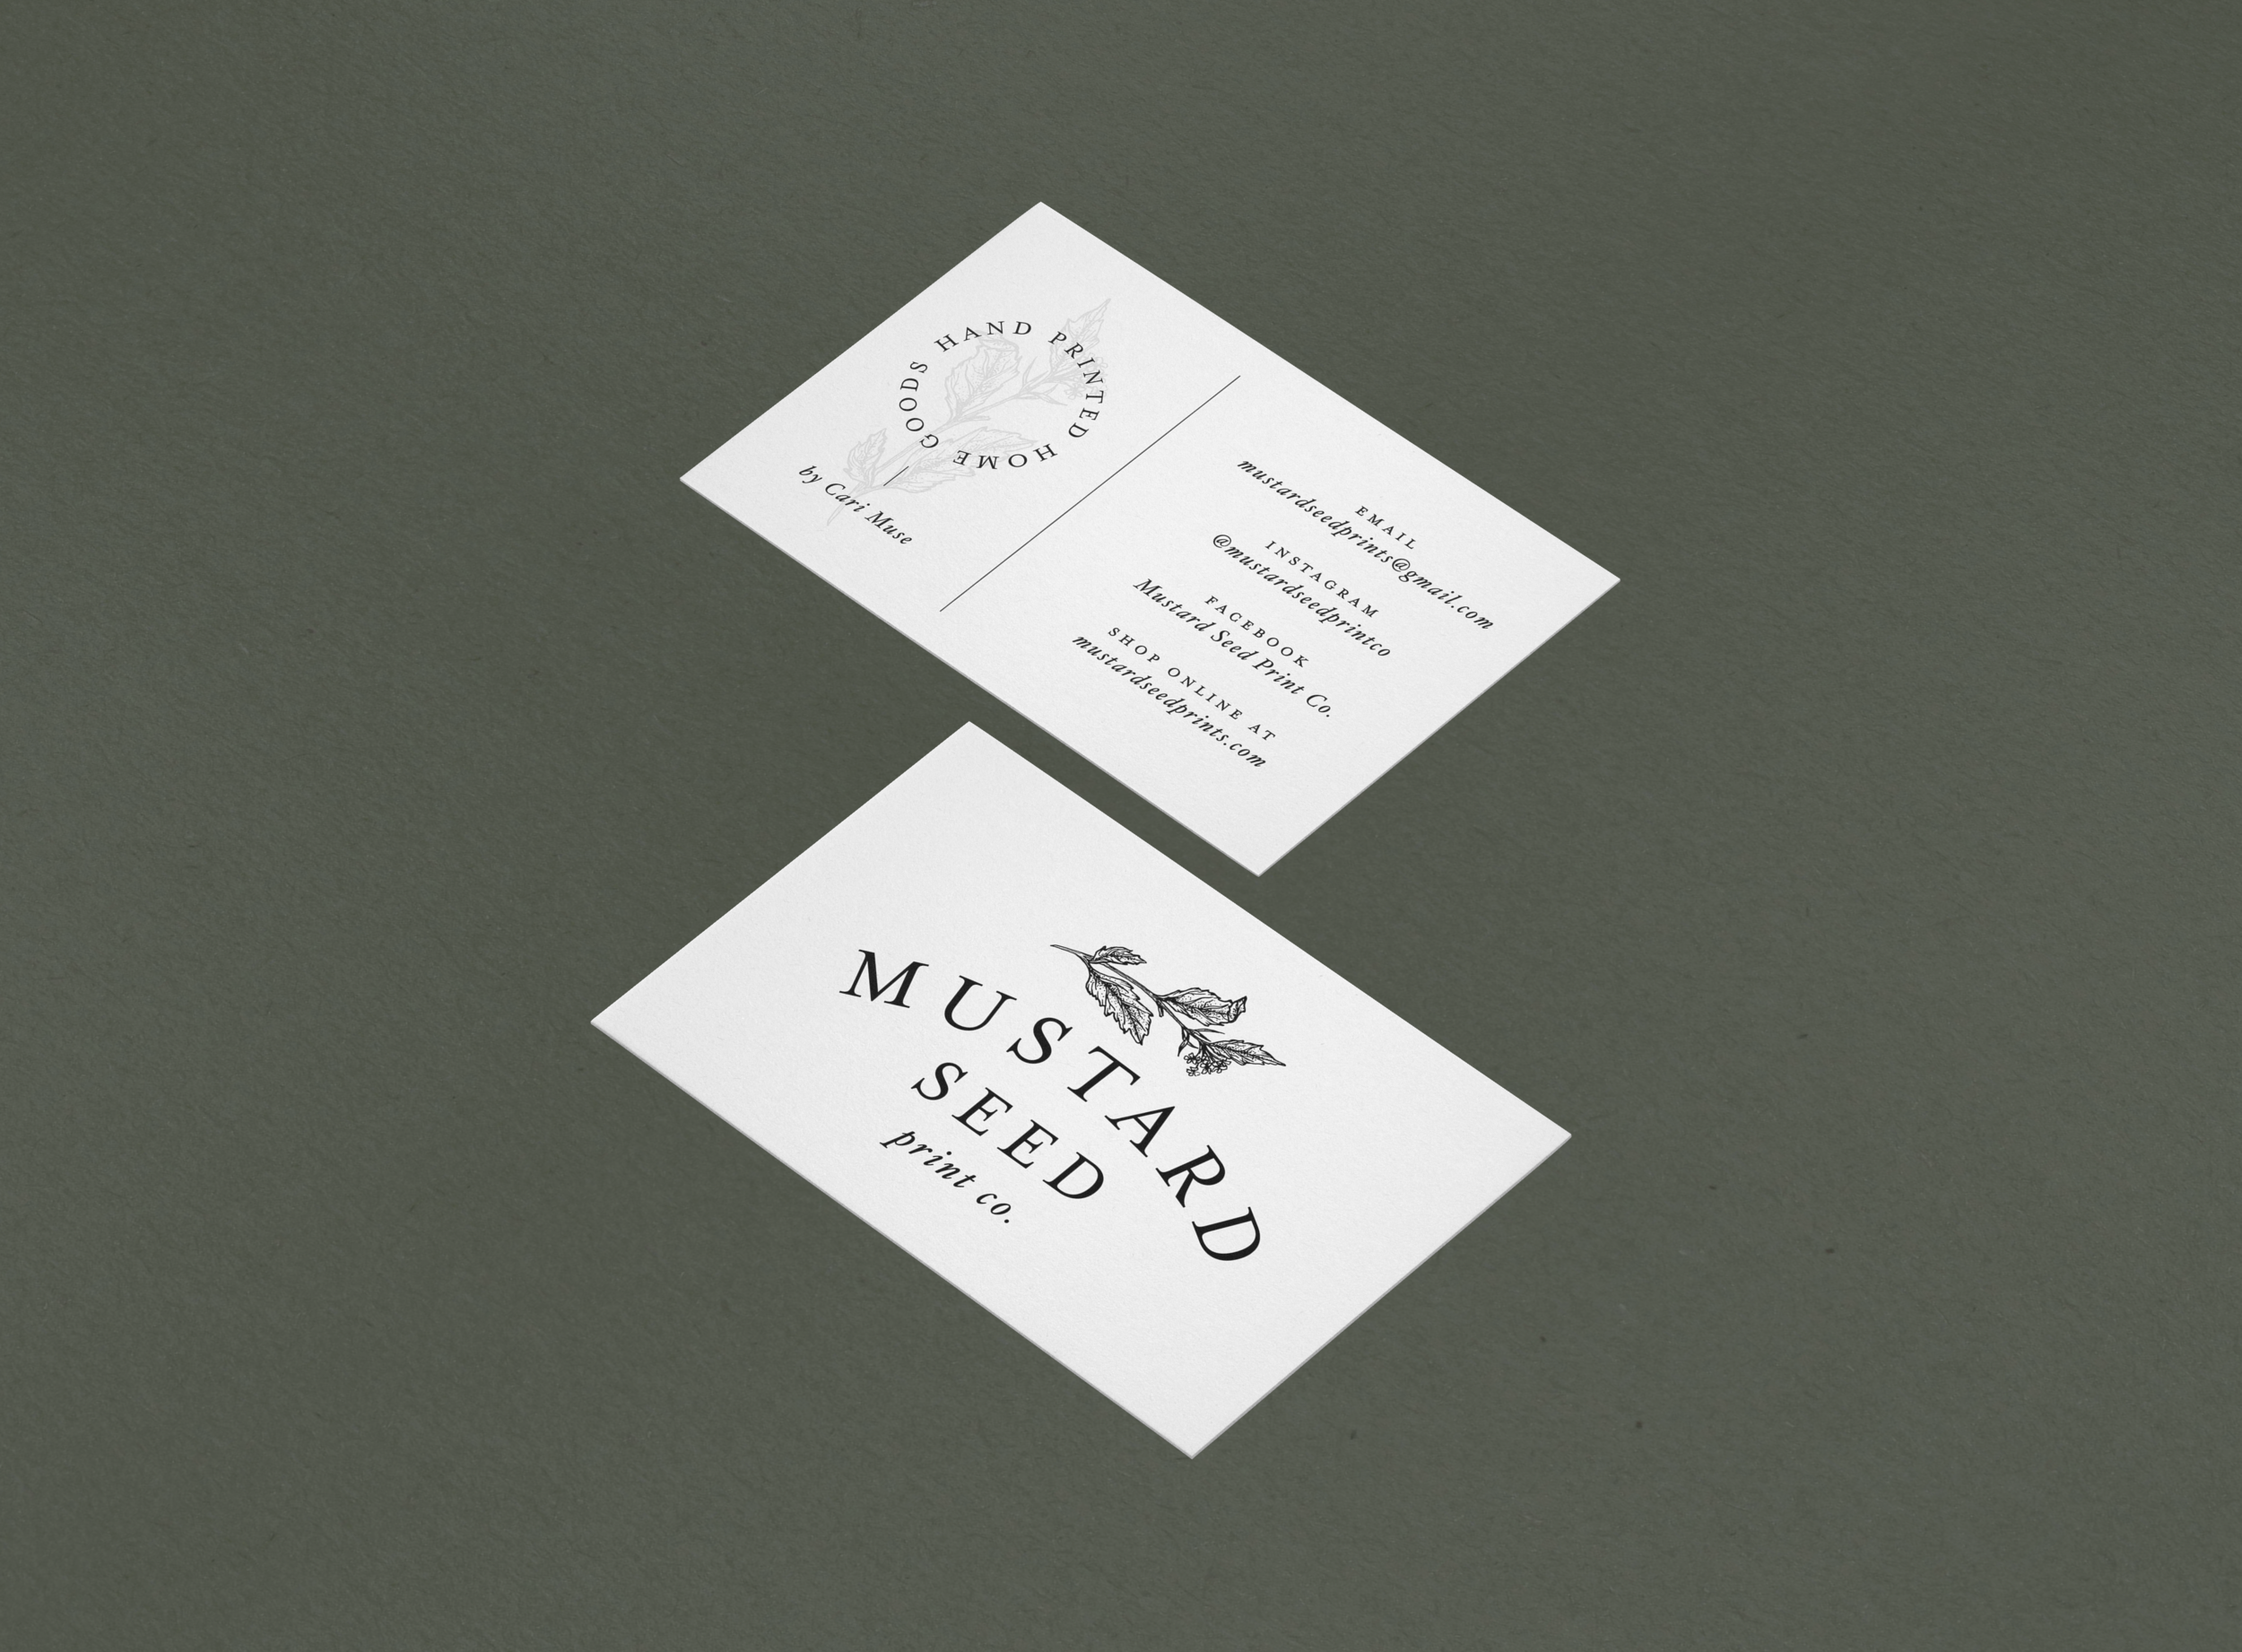 MSPC Business Card Mockup.png